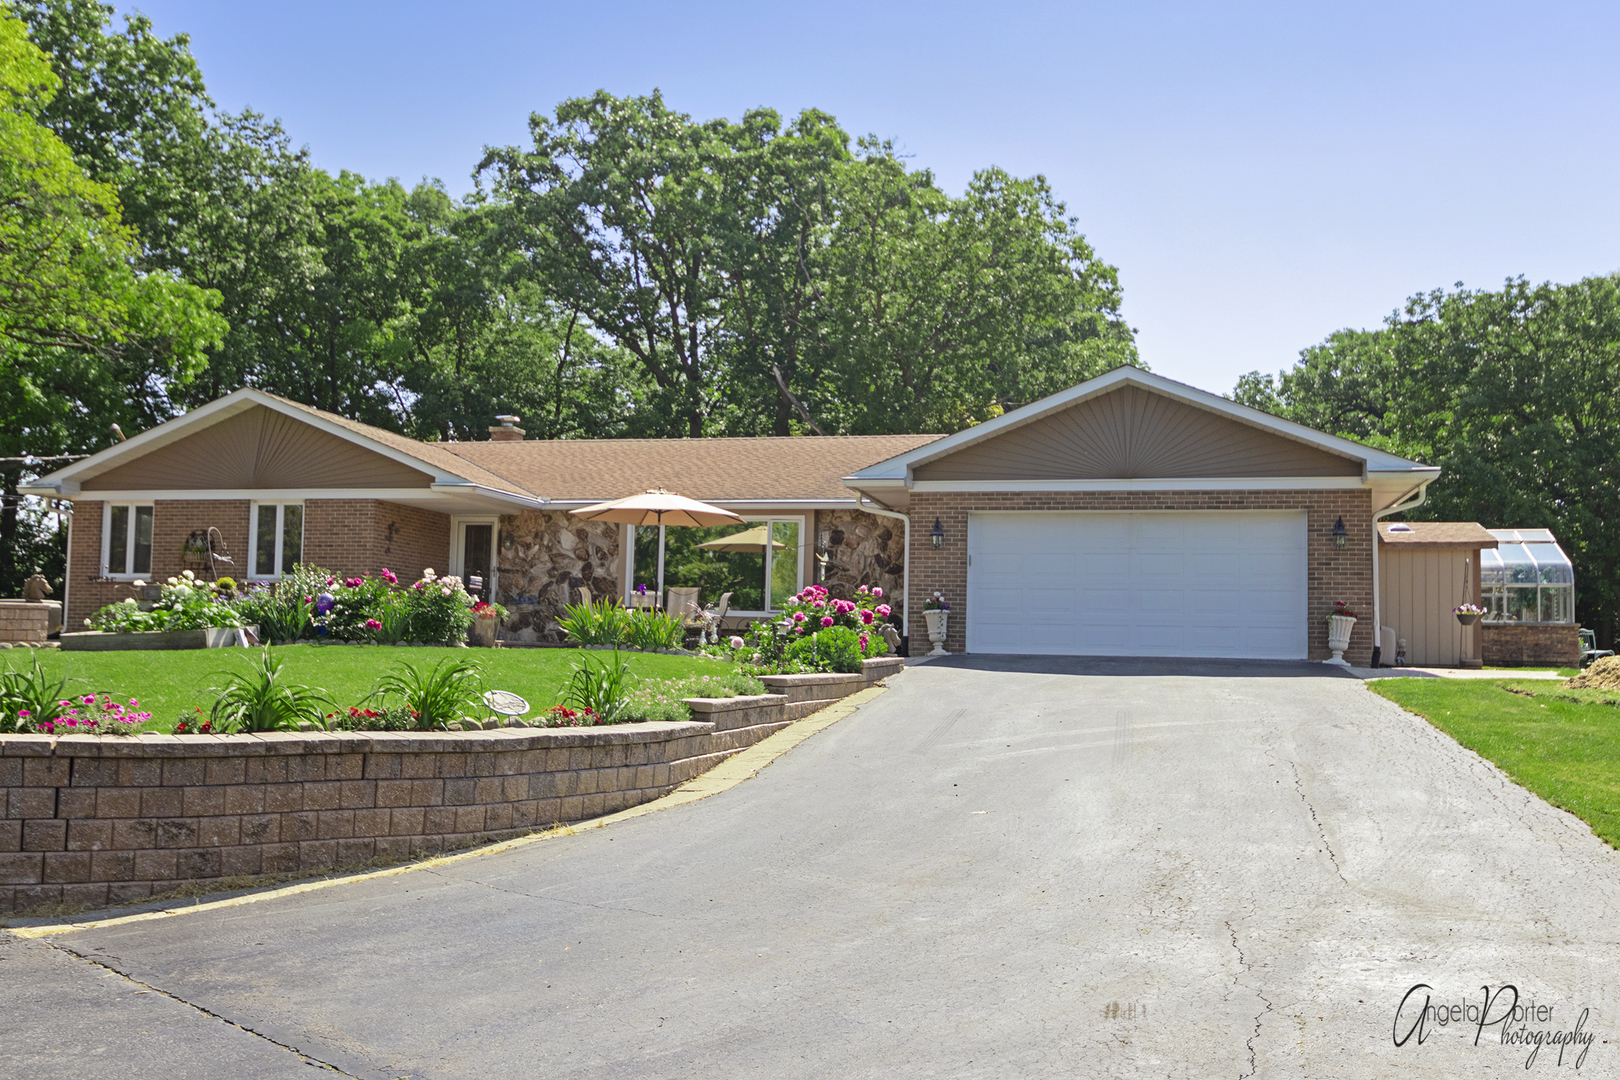 38345 North Fairfield Road, Lake Villa, Illinois 60046